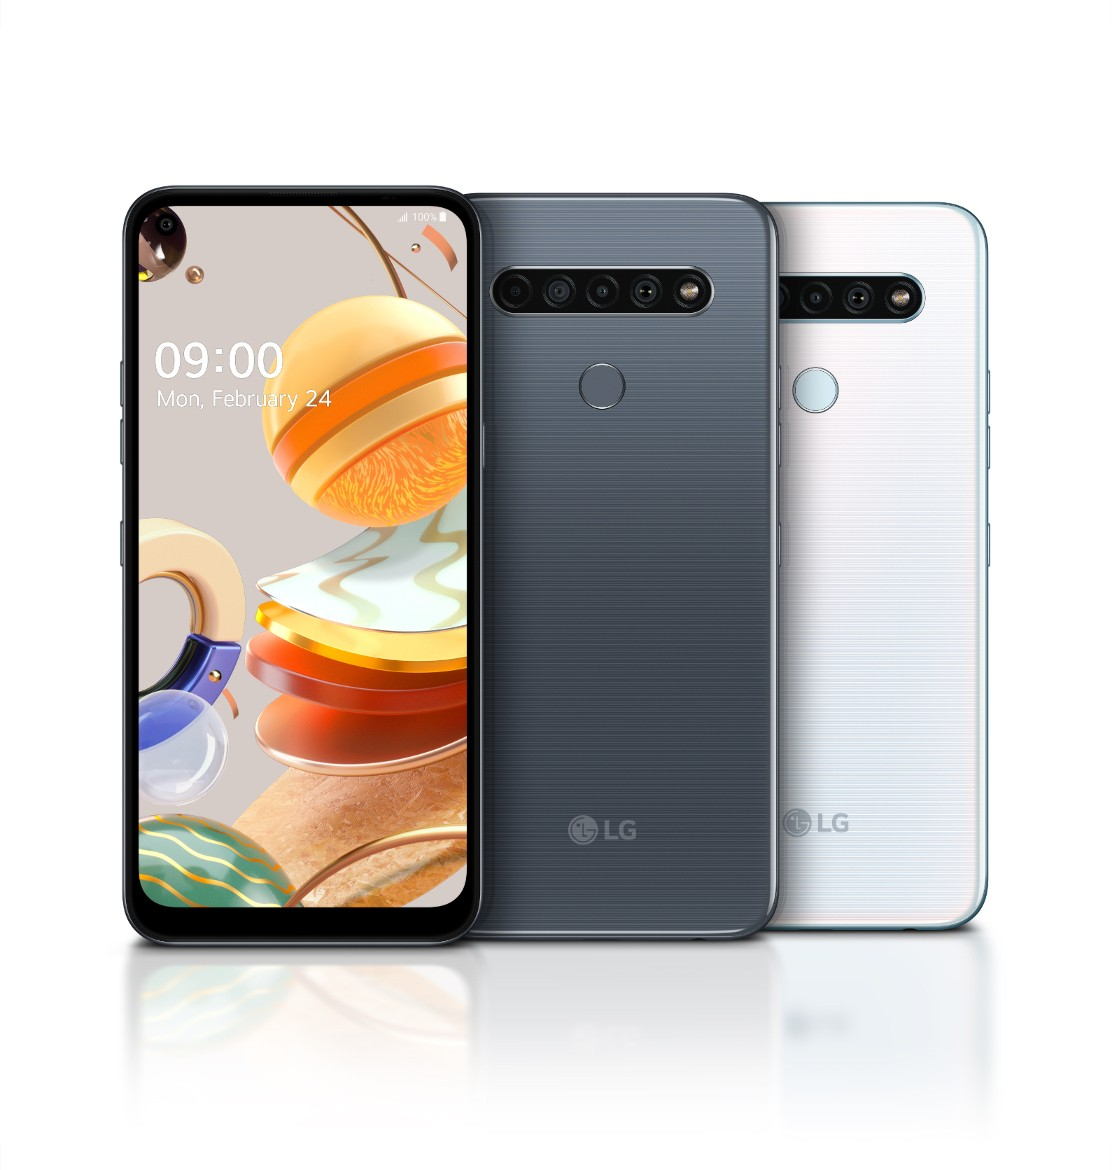 LG announces 2020 K series smartphone line-up with premium cameras